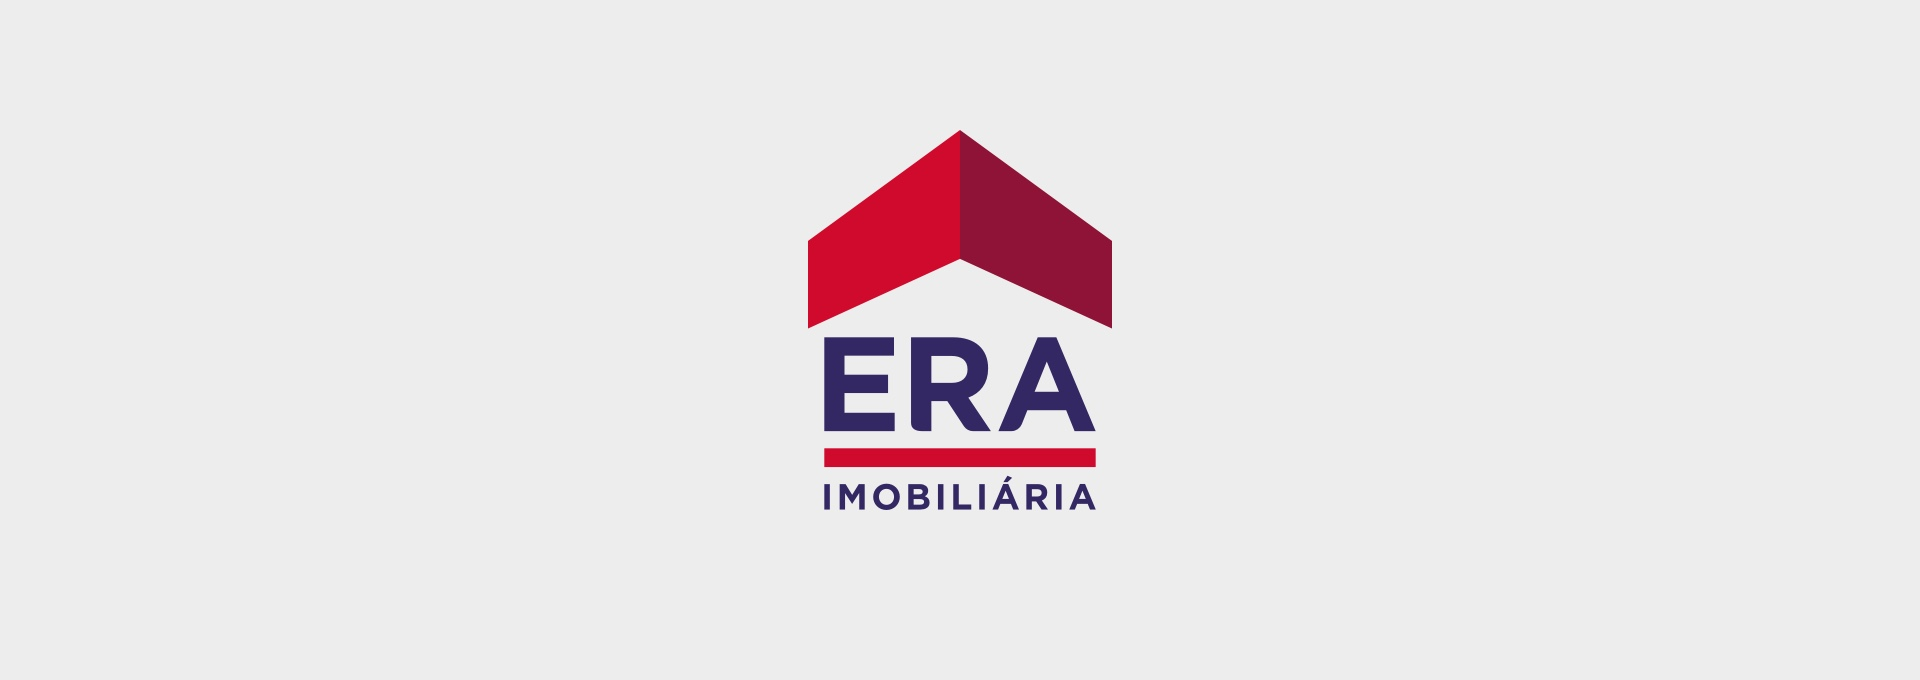 Real estate land / Évora, Horta das Figueiras